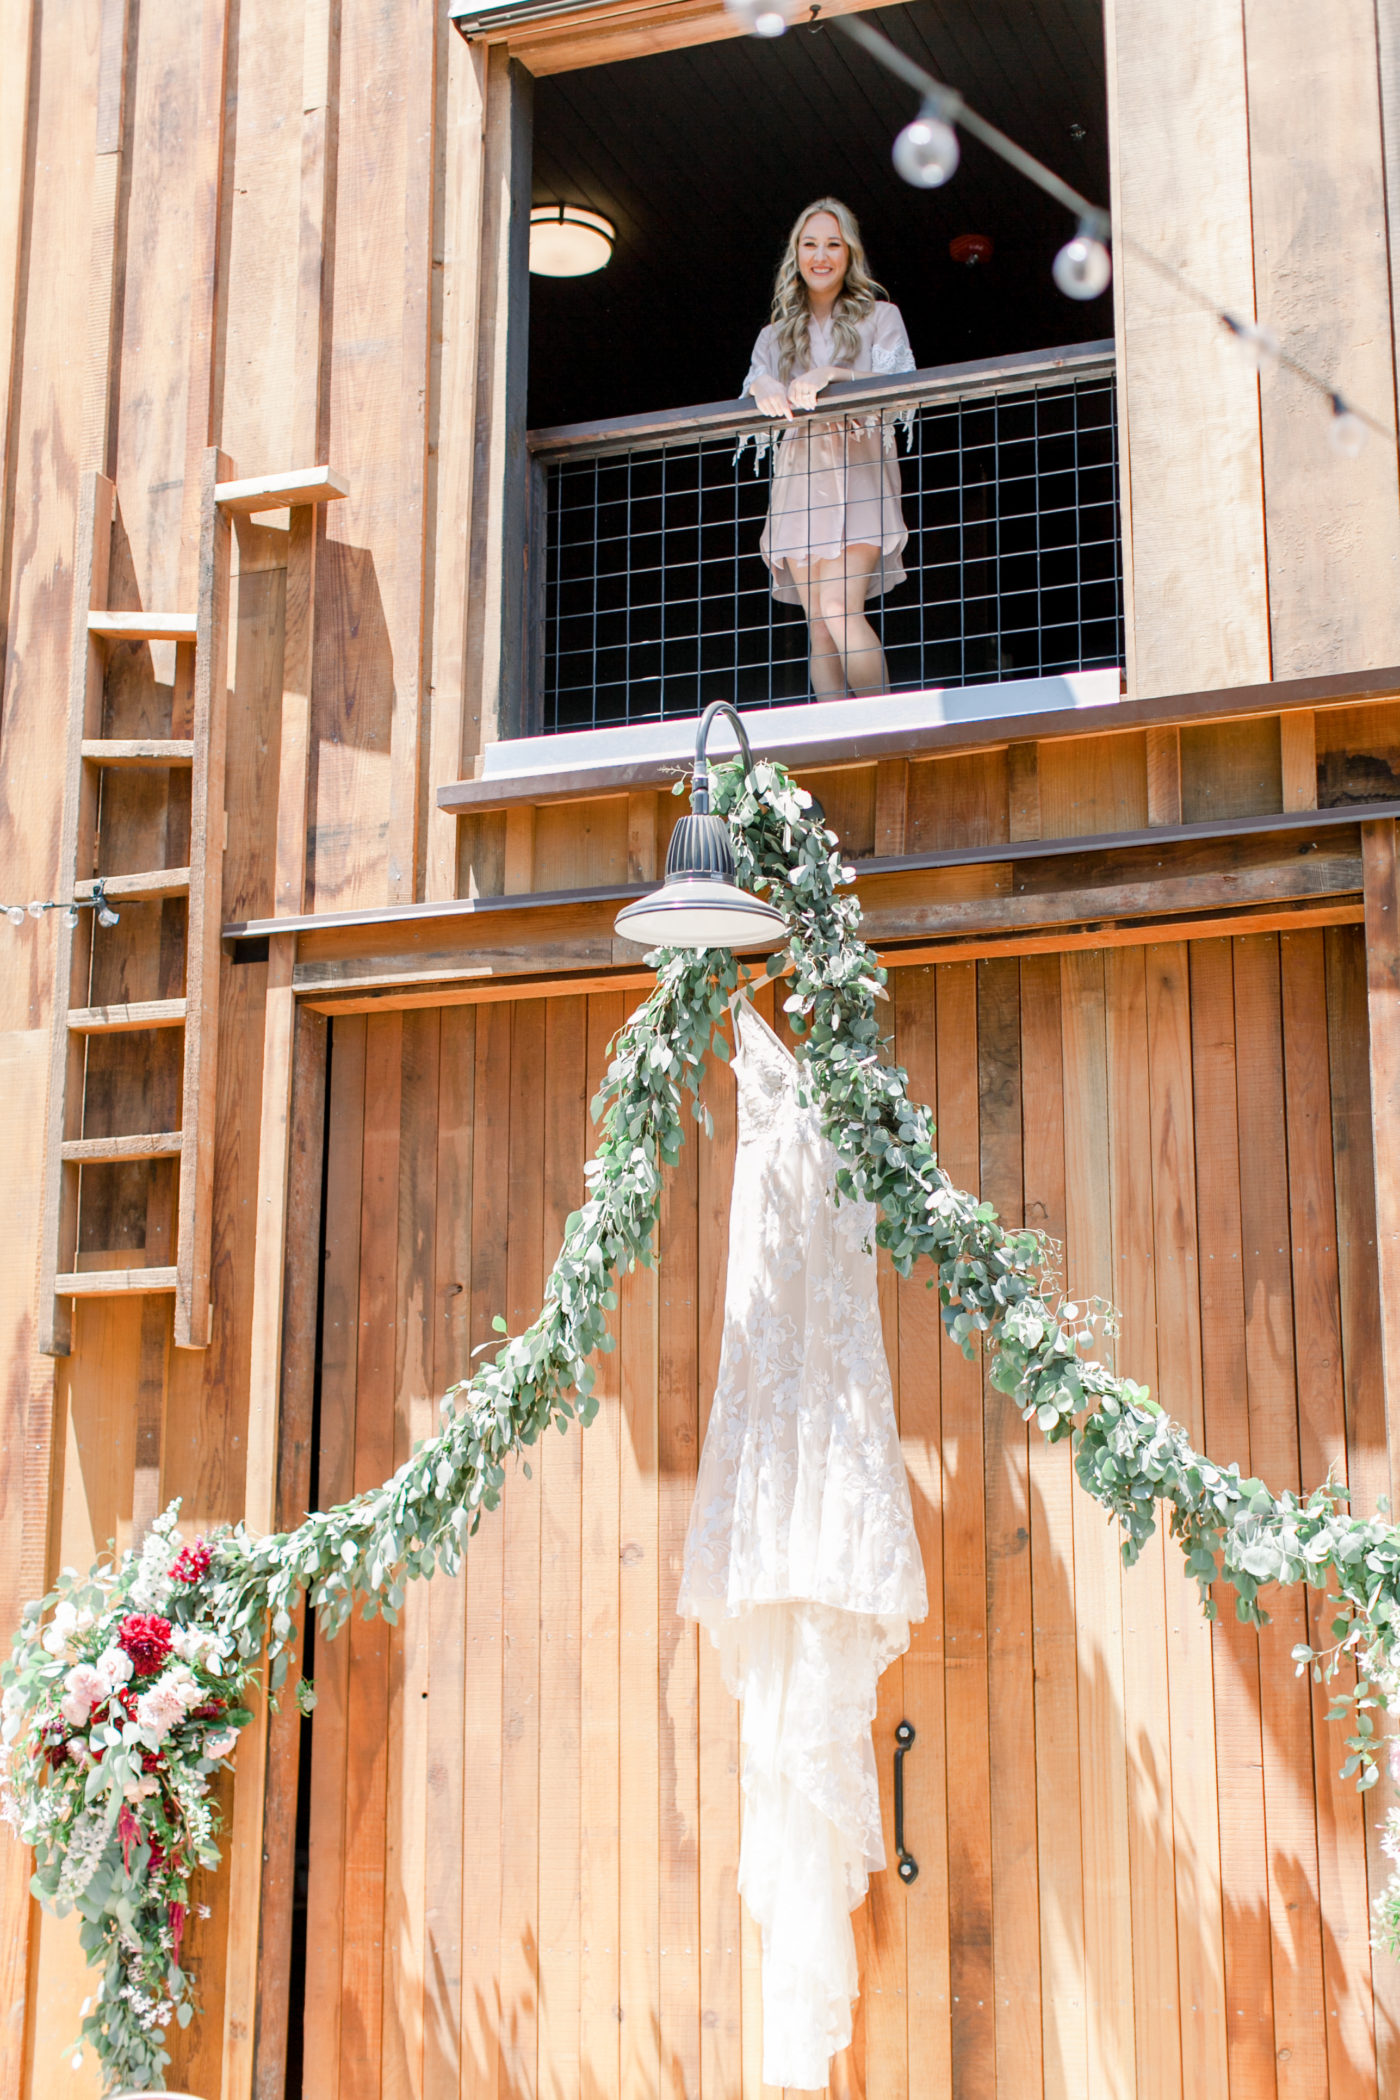 Getting ready for a wedding at the Cooper Molera Barns in Monterey